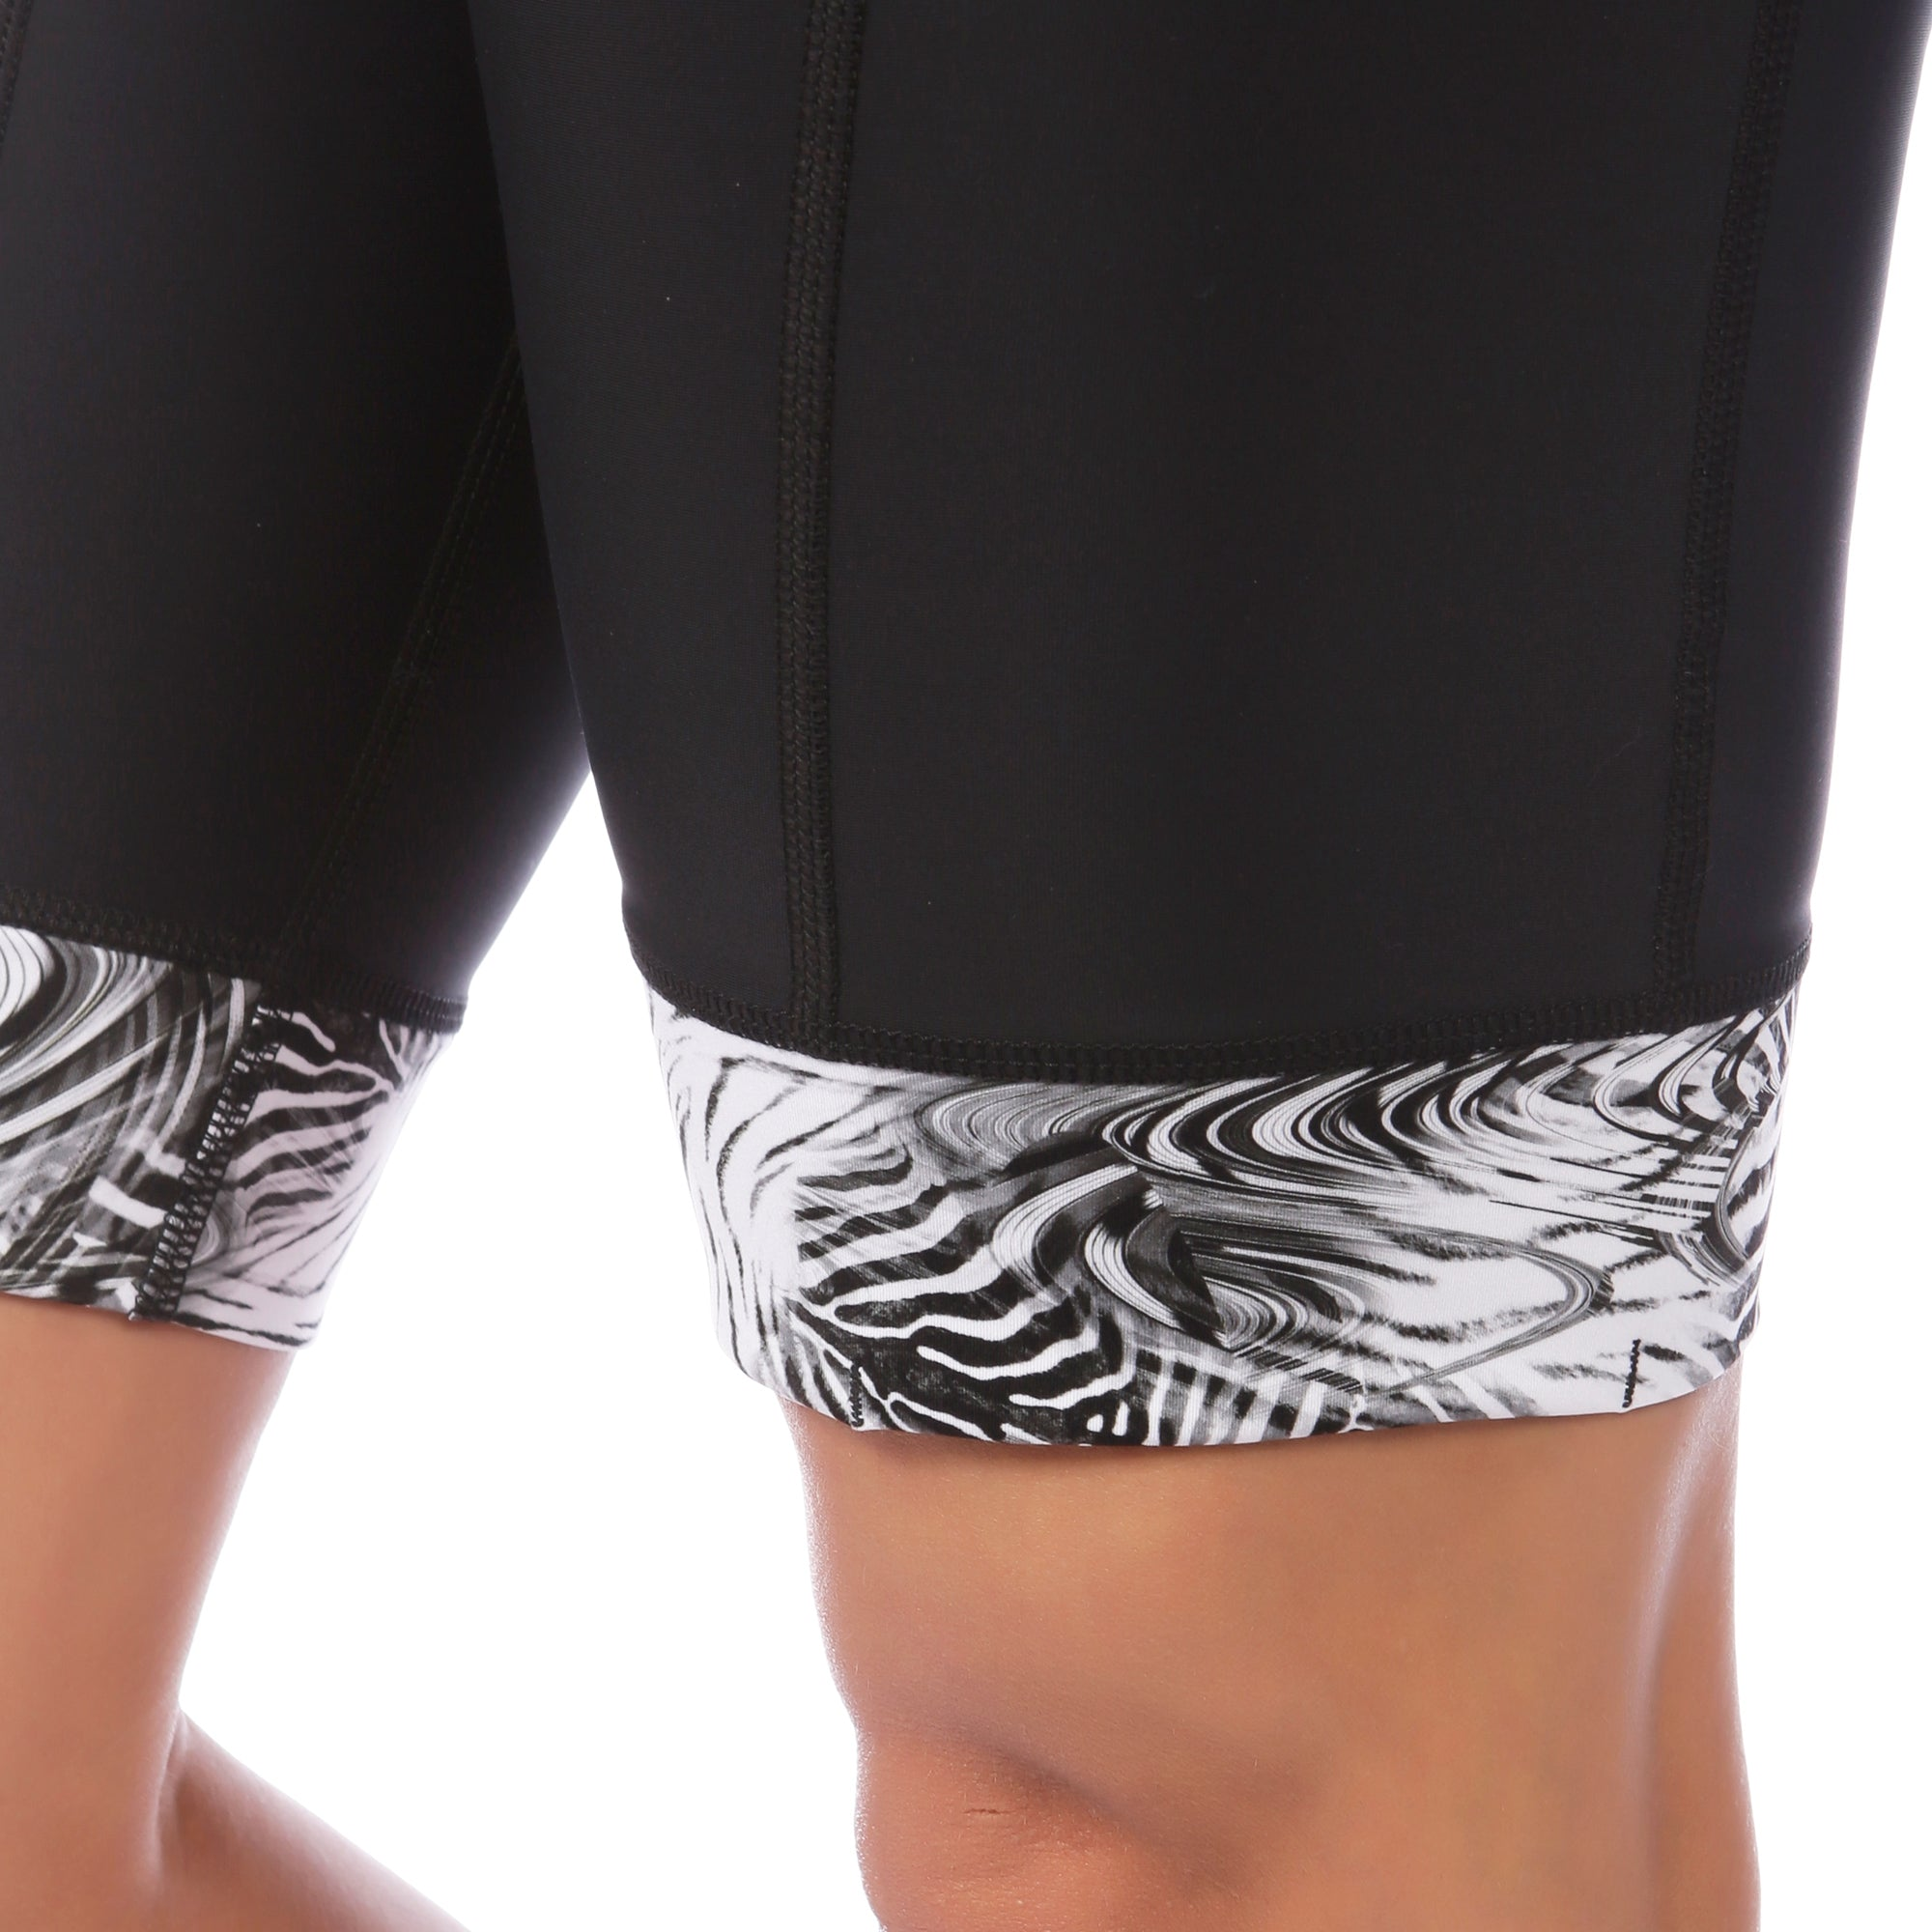 Ritzy Trisuit with/ without Support Bra in Hidden Zebra